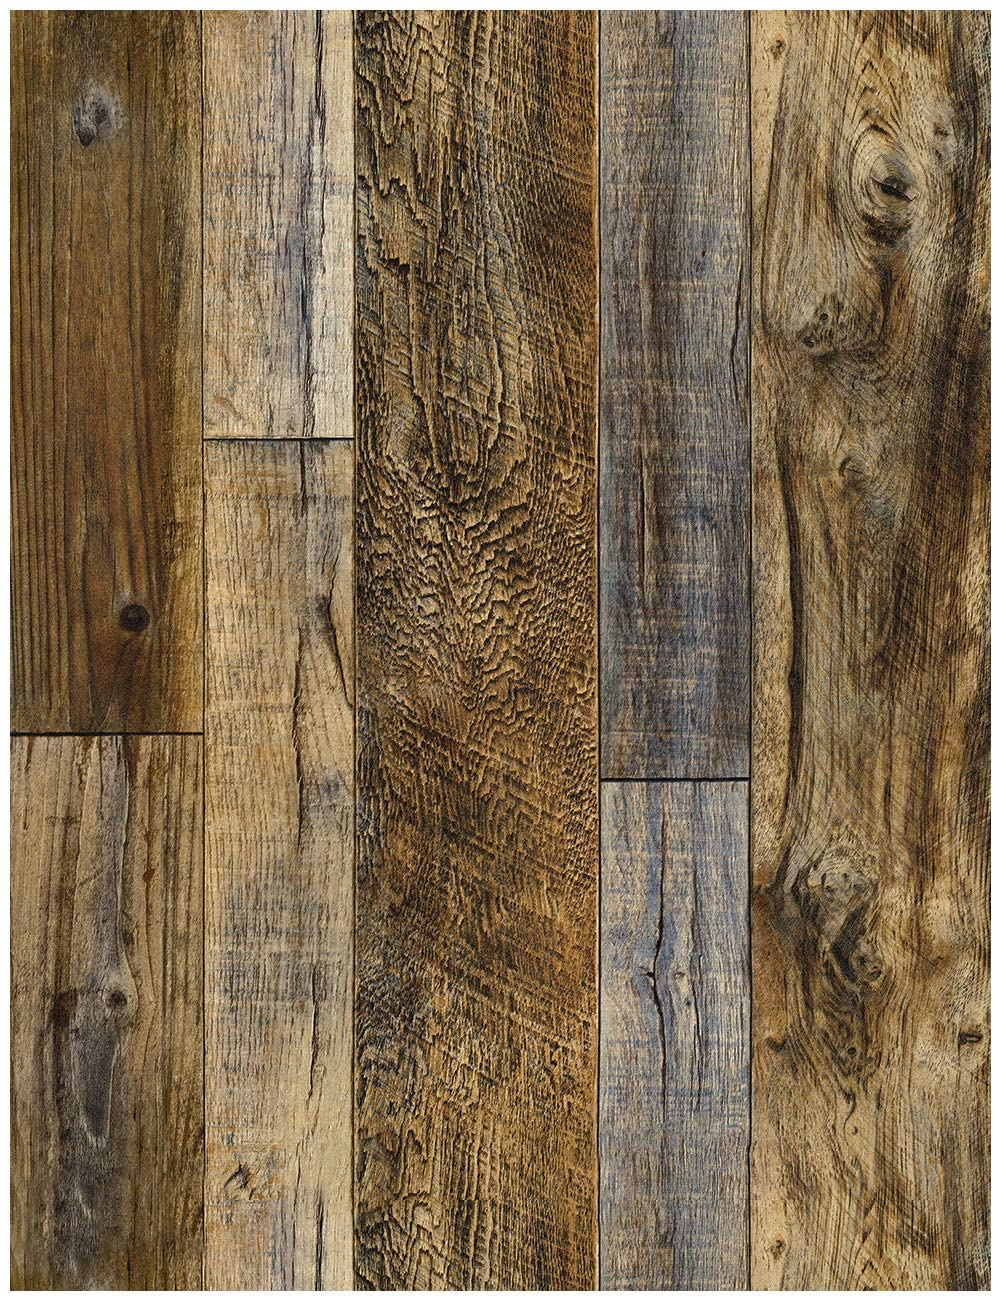 Peel and Stick Wood Plank Wallpaper Shiplap Brown Vinyl Self Adhesive Contact Paper Decorative Wall Covering Stickers 1